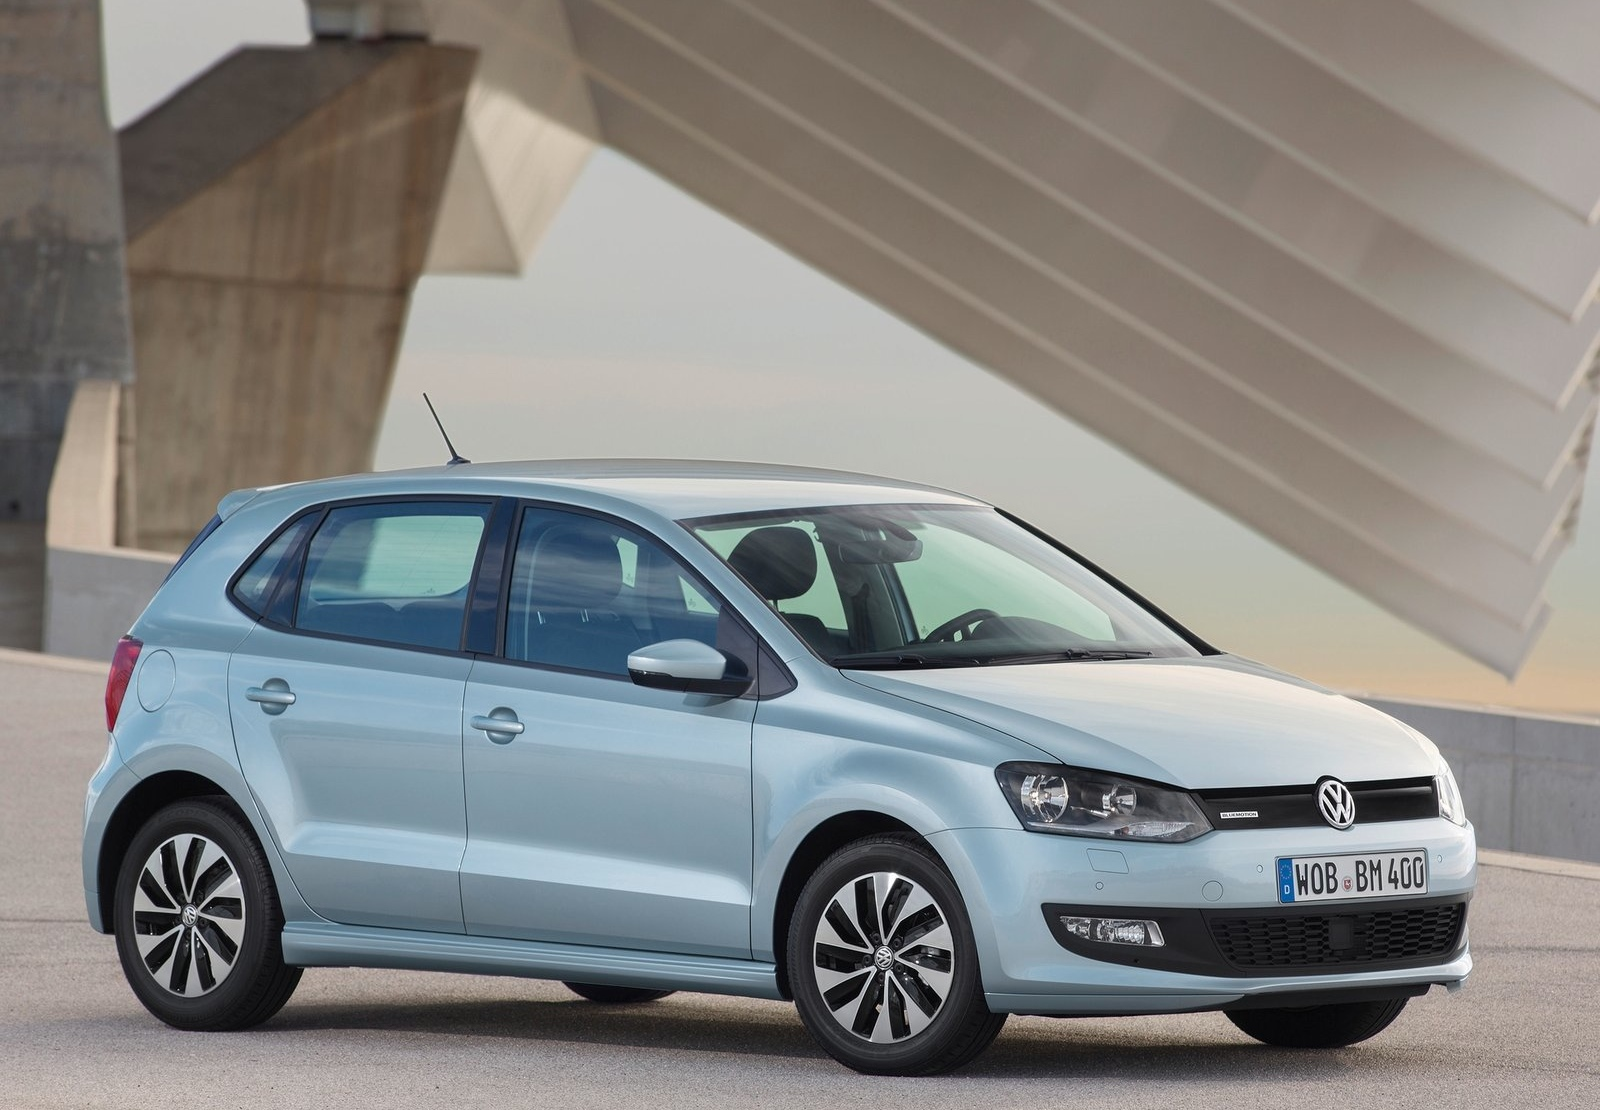 vw launches 2015 polo tsi bluemotion with 1 liter turbo. Black Bedroom Furniture Sets. Home Design Ideas